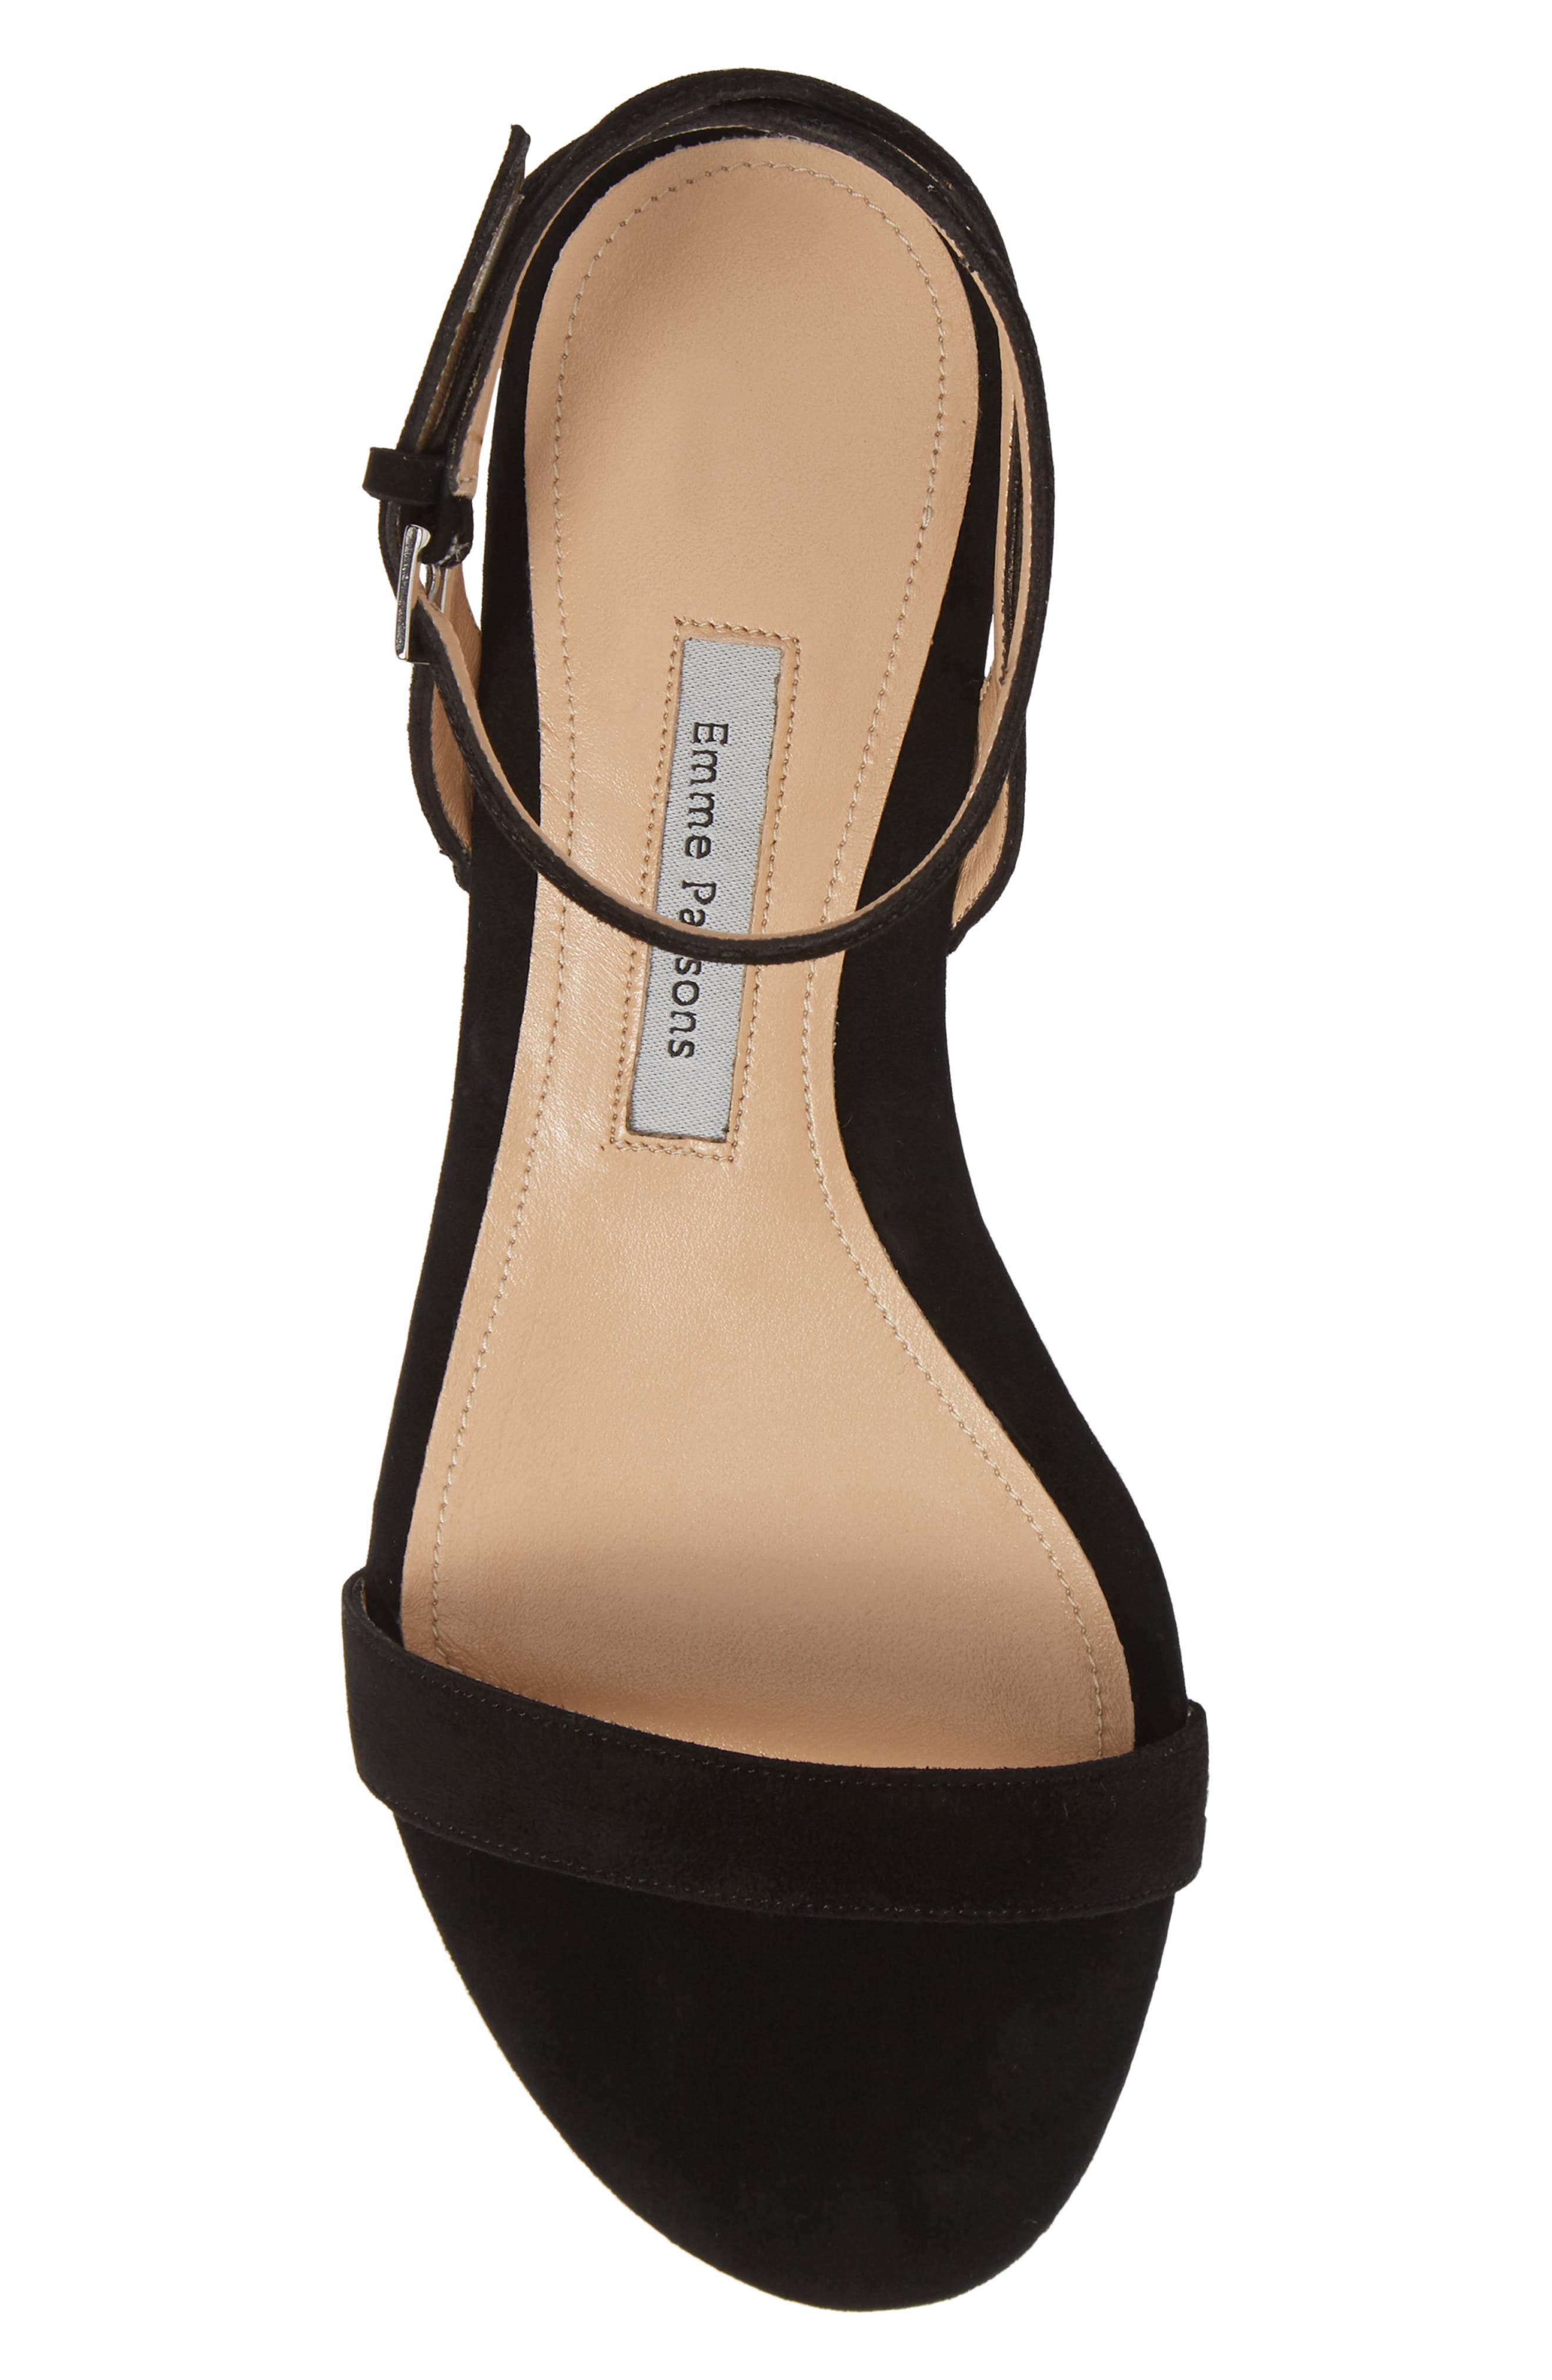 EMME PARSONS, One Ankle Strap Flat Sandal, Alternate thumbnail 5, color, BLACK